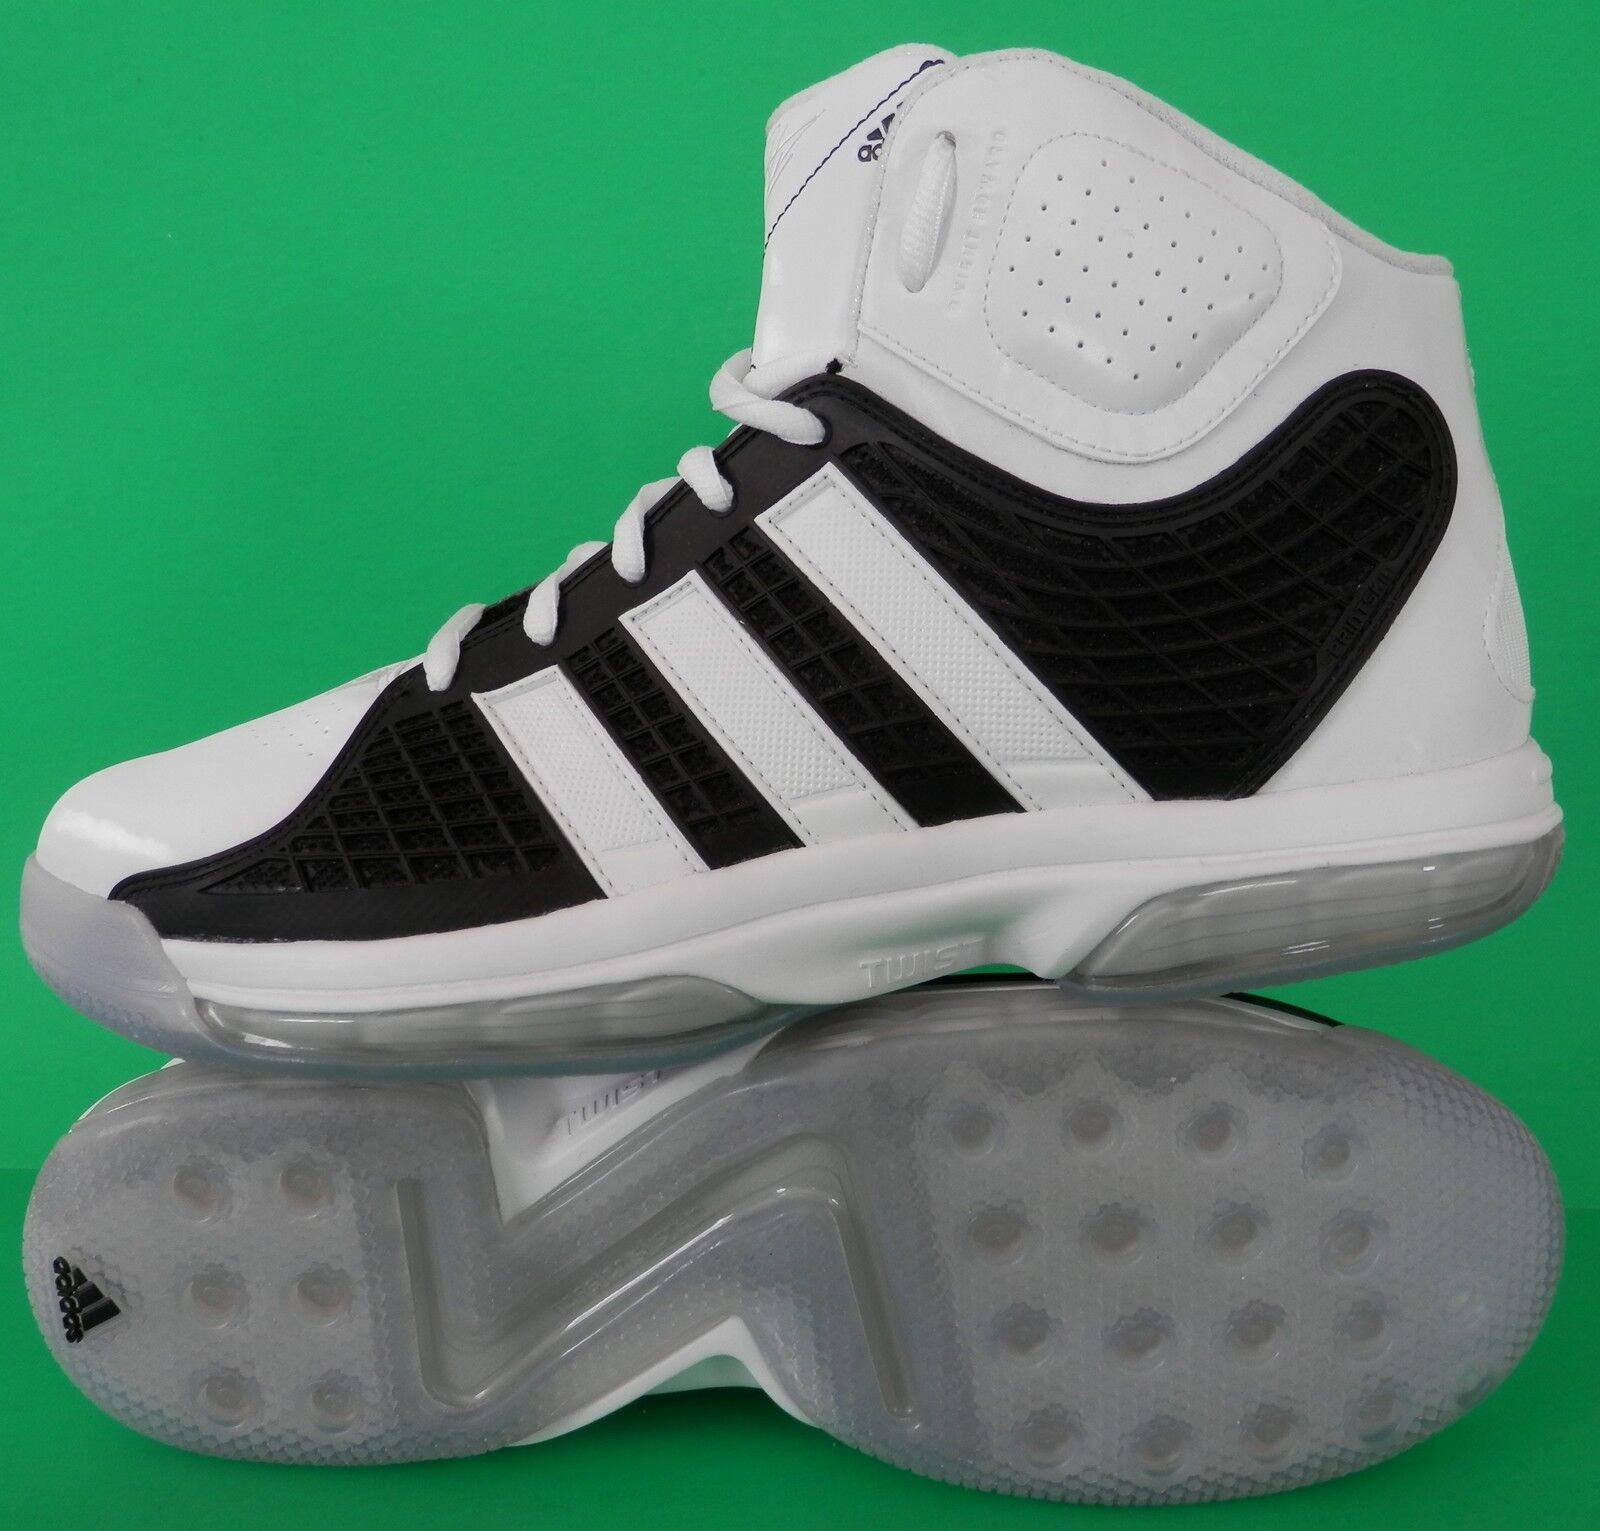 Adidas ADIPOWER HOWARD SUPERMN Dwight light basketball crazy shoes adizeroMen 13